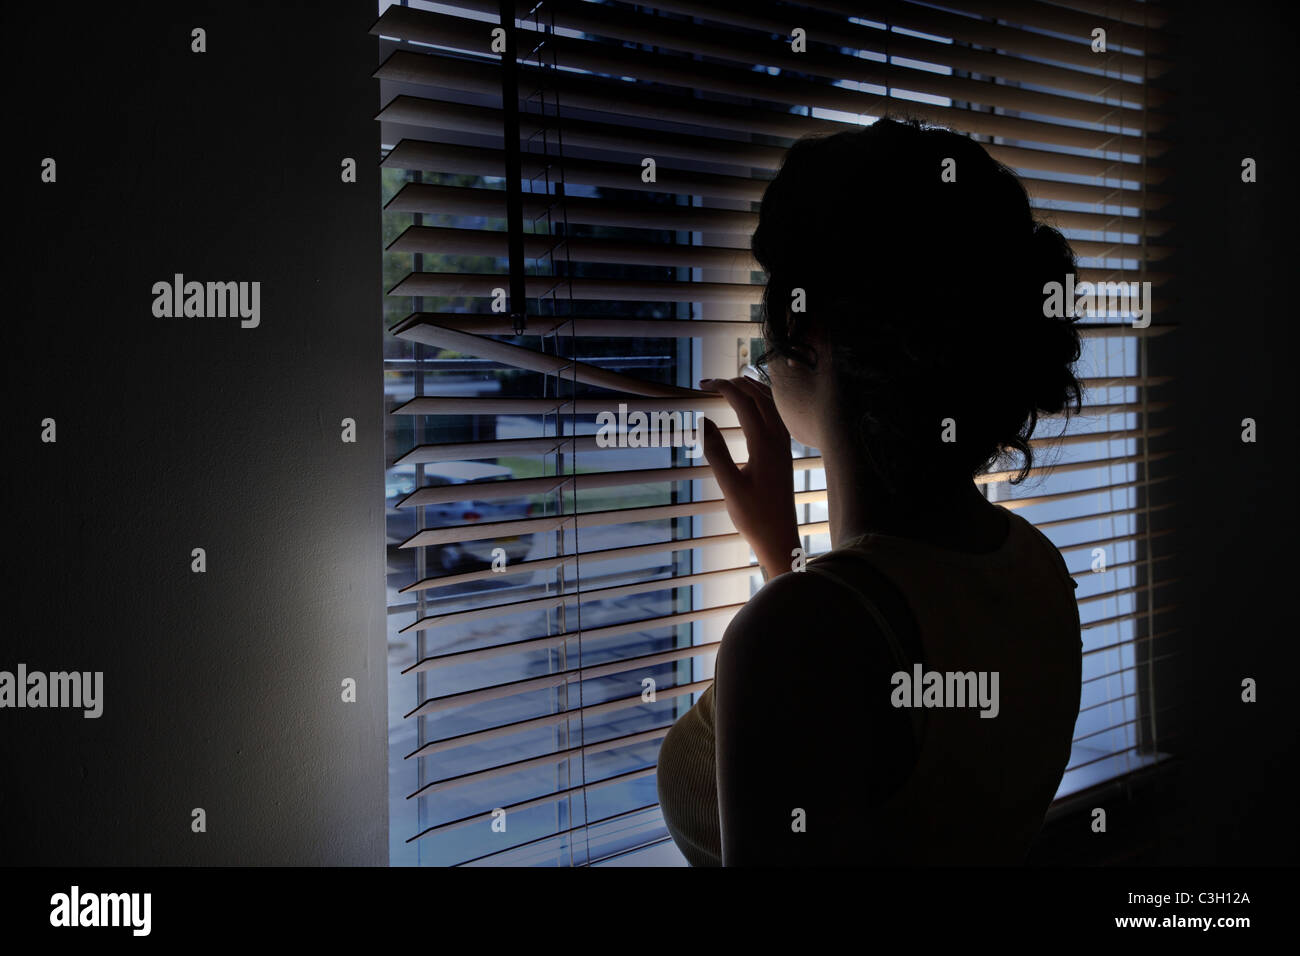 Woman looking though a window blind onto a dark empty street. Stock Photo